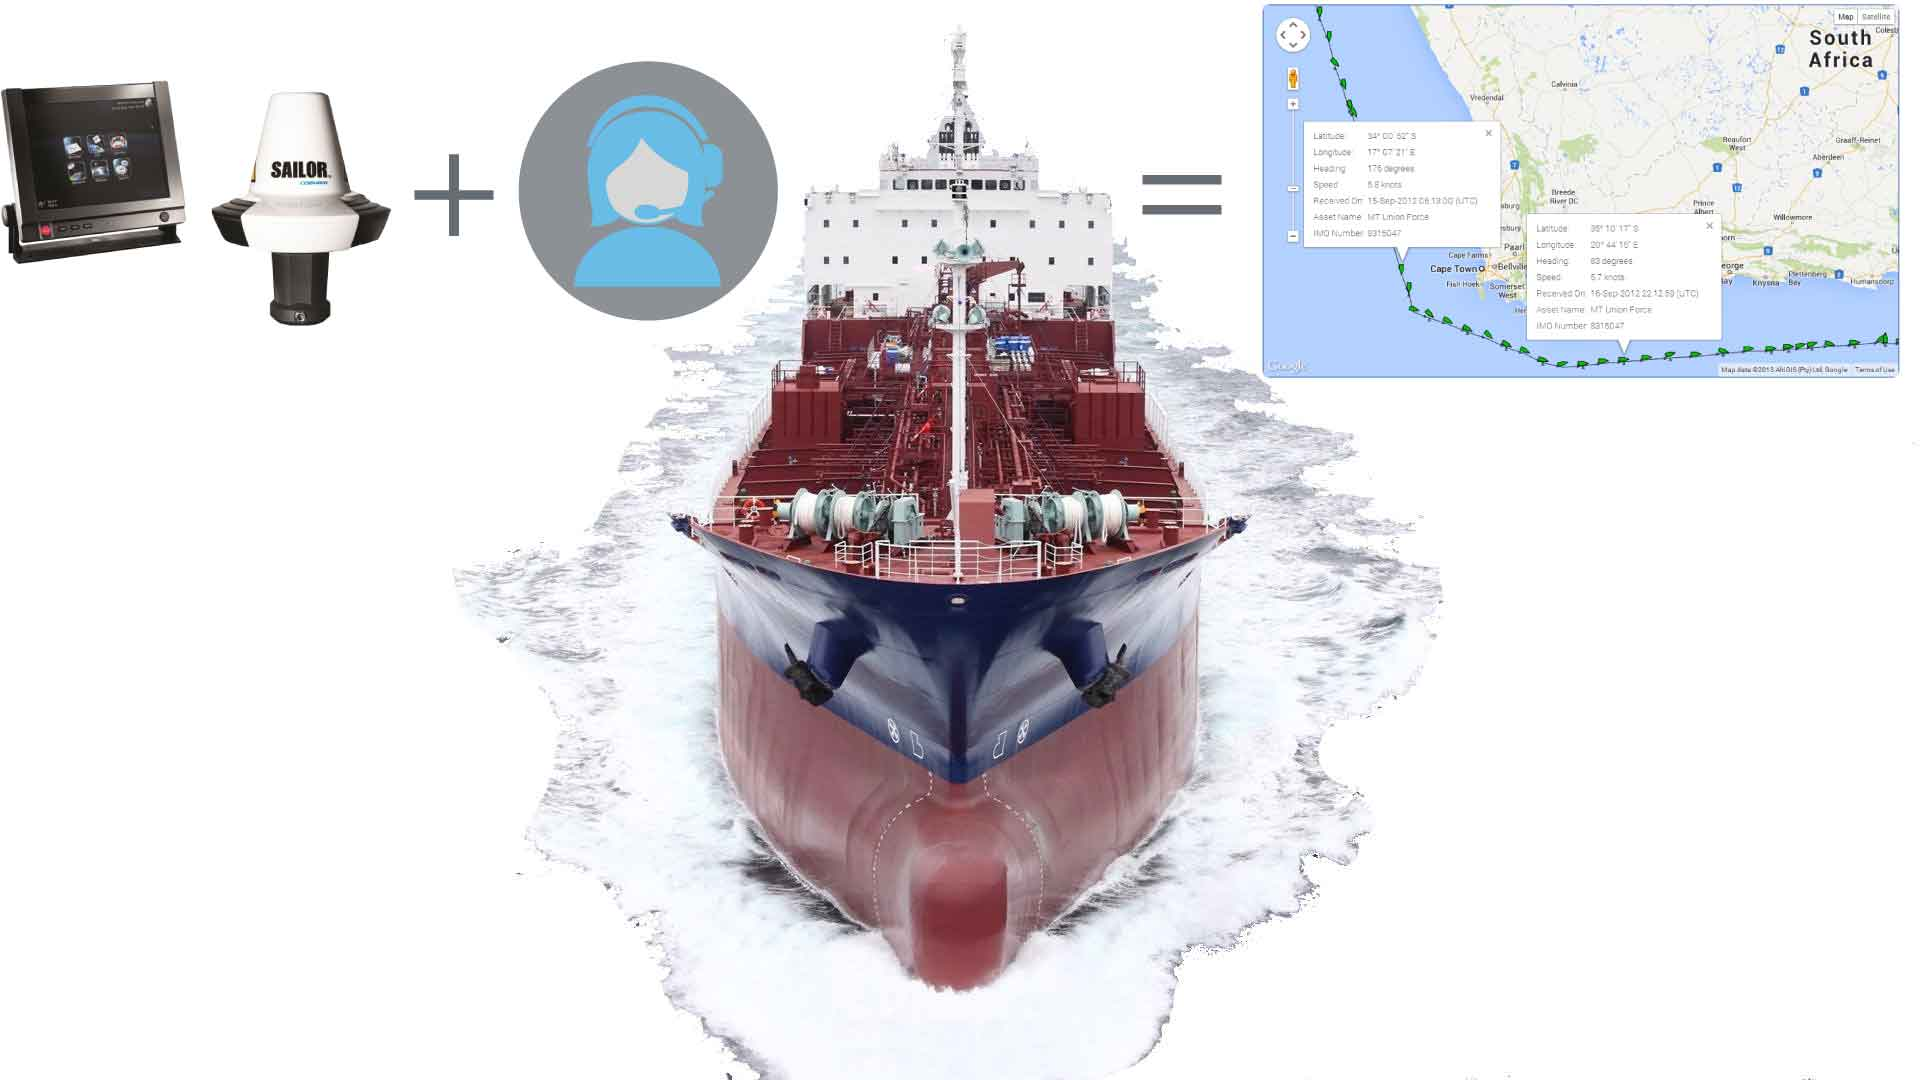 Sat-c hardware supports vessel tracking